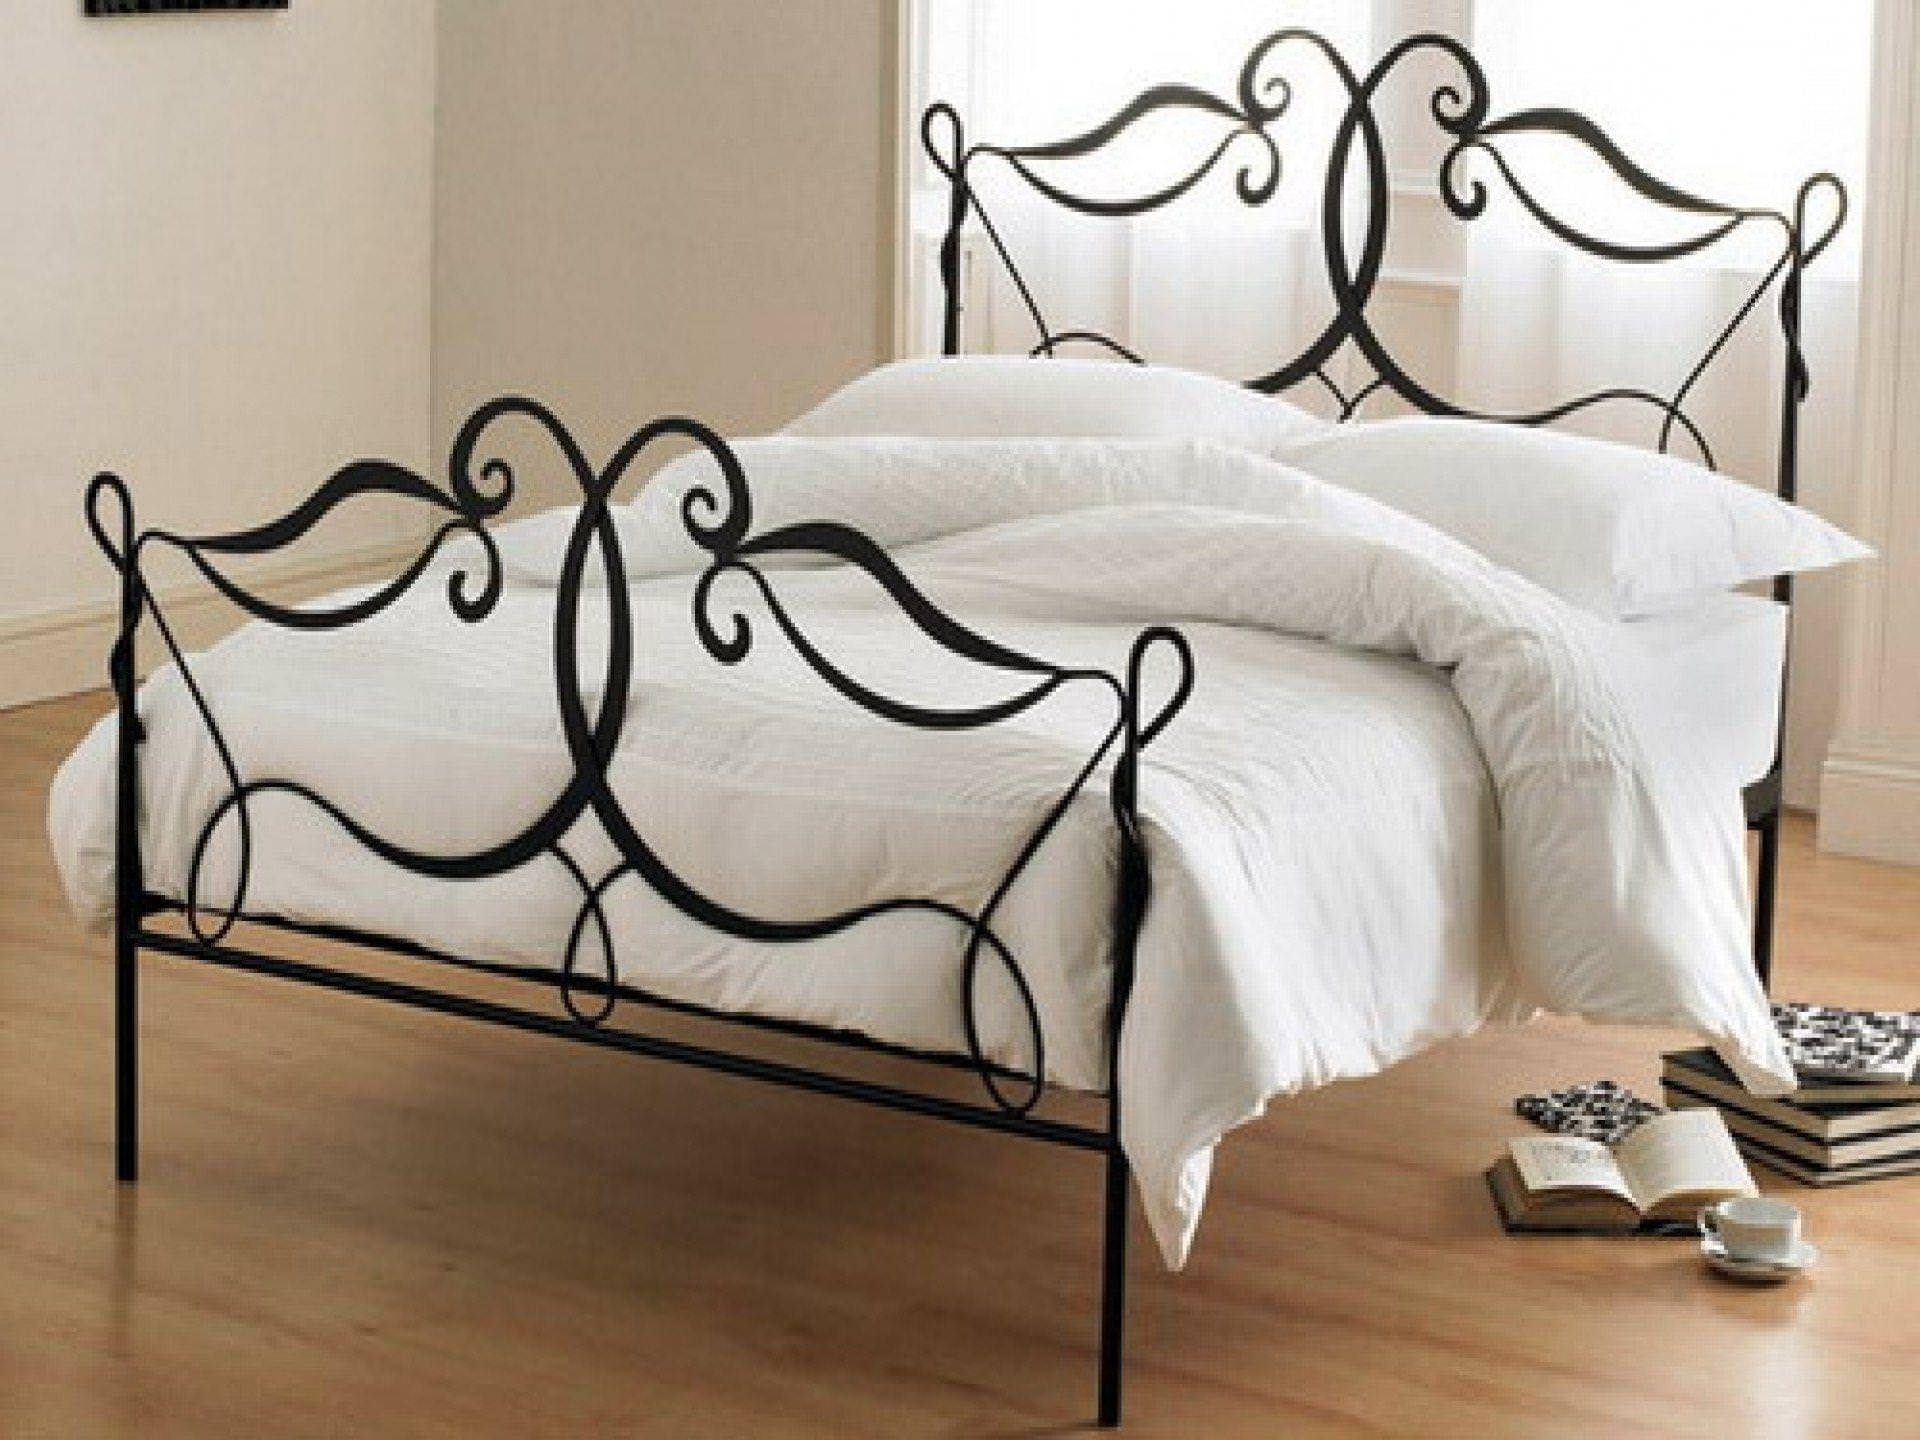 Bedroom : Metal Wall Decor Cheap Metal Artwork For Wall Outdoor Within Latest Italian Metal Wall Art (View 14 of 25)